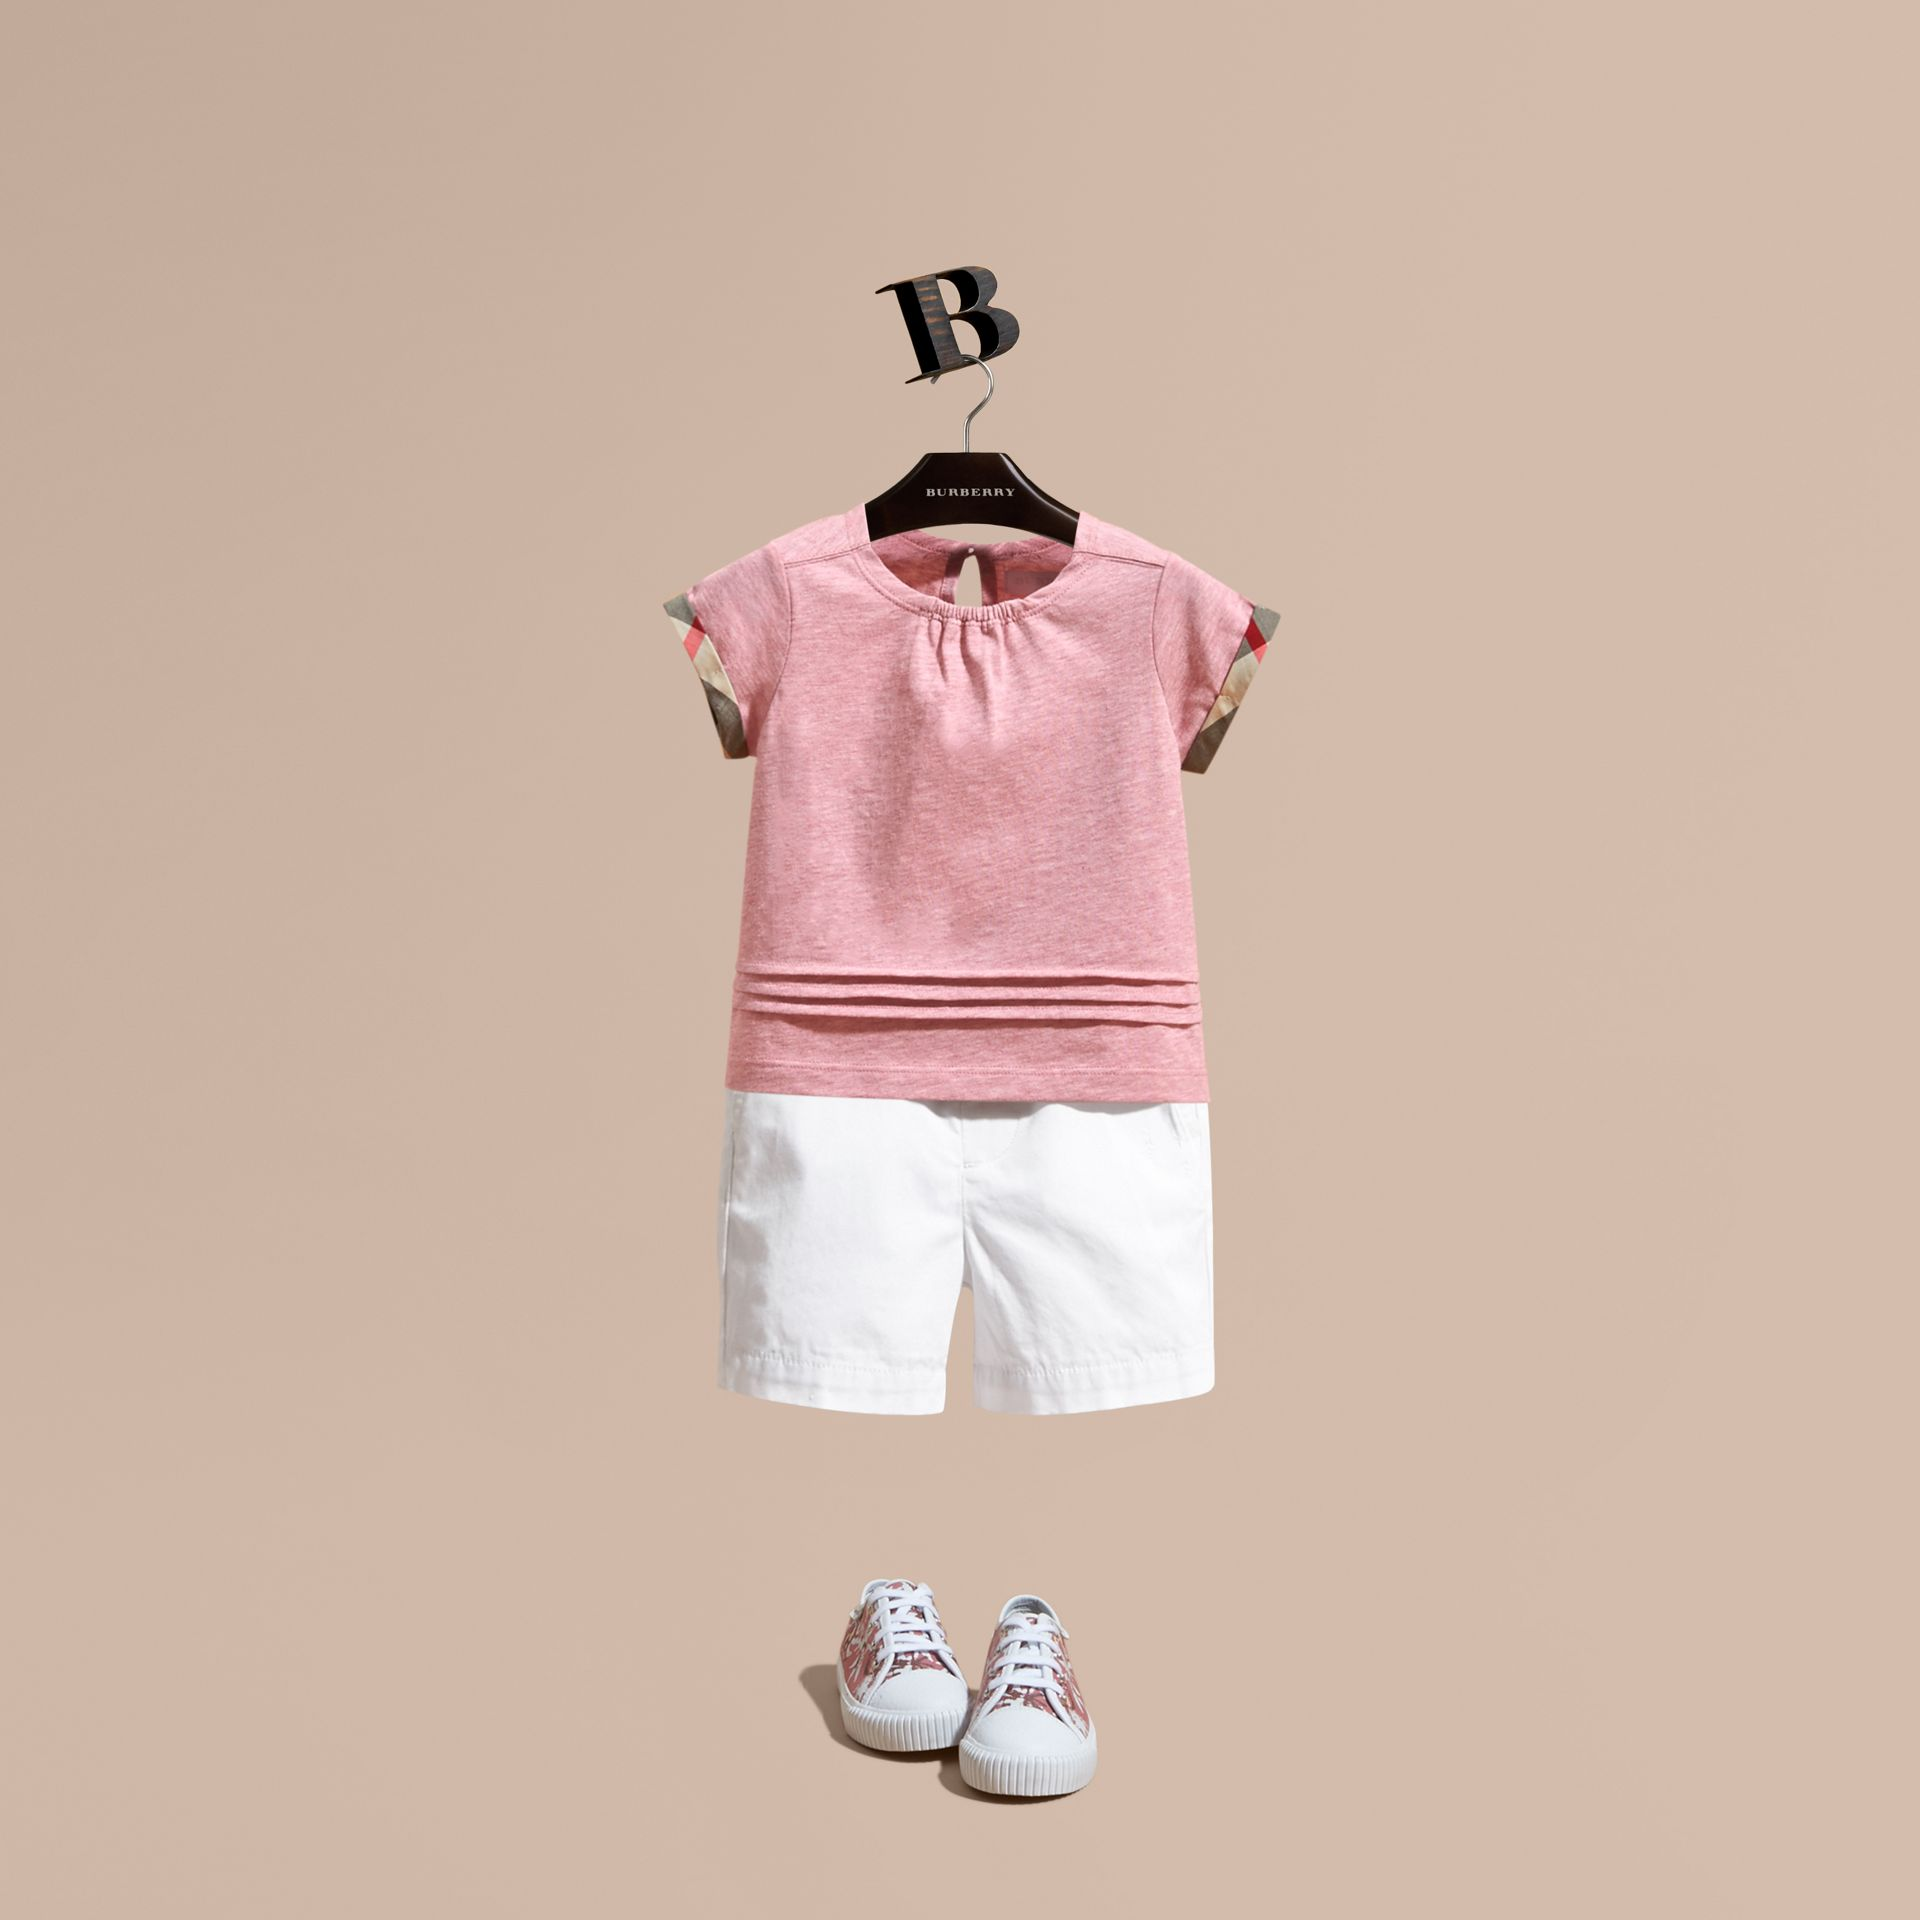 Pleat and Check Detail Cotton T-shirt in Light Copper Pink Melange | Burberry - gallery image 1